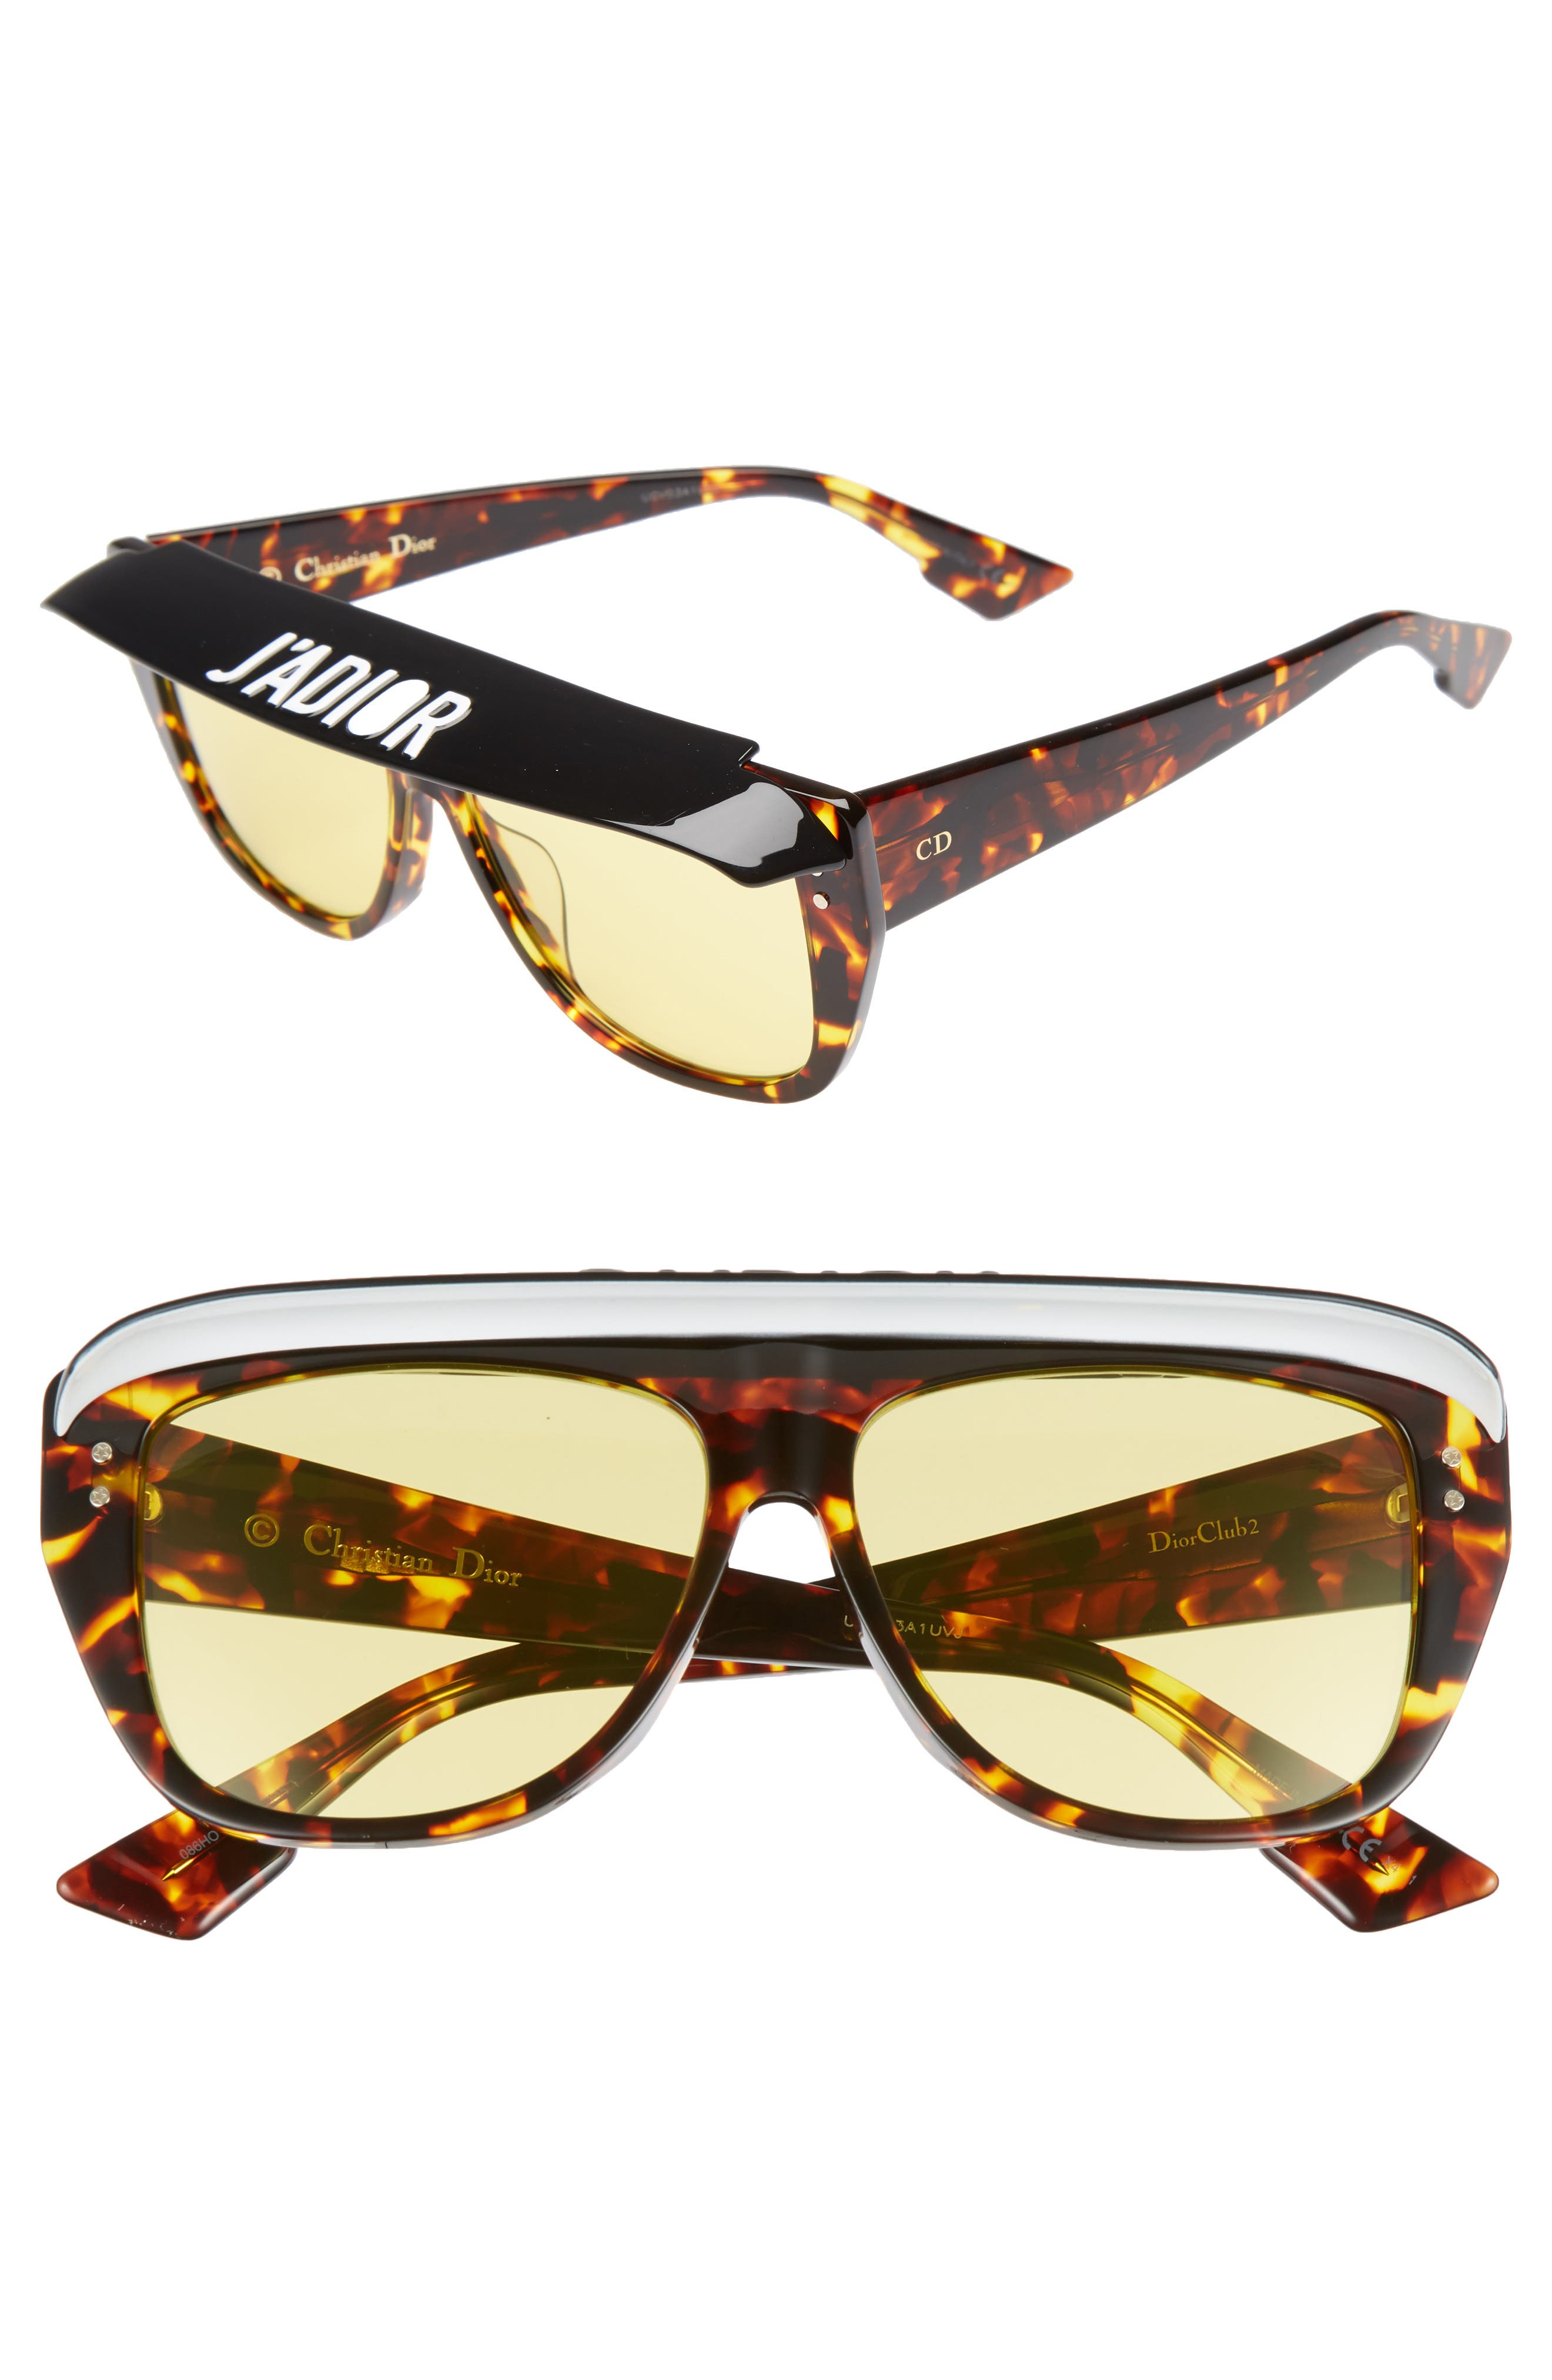 Dior DiorClub2S 56mm Square Sunglasses with Removable Visor